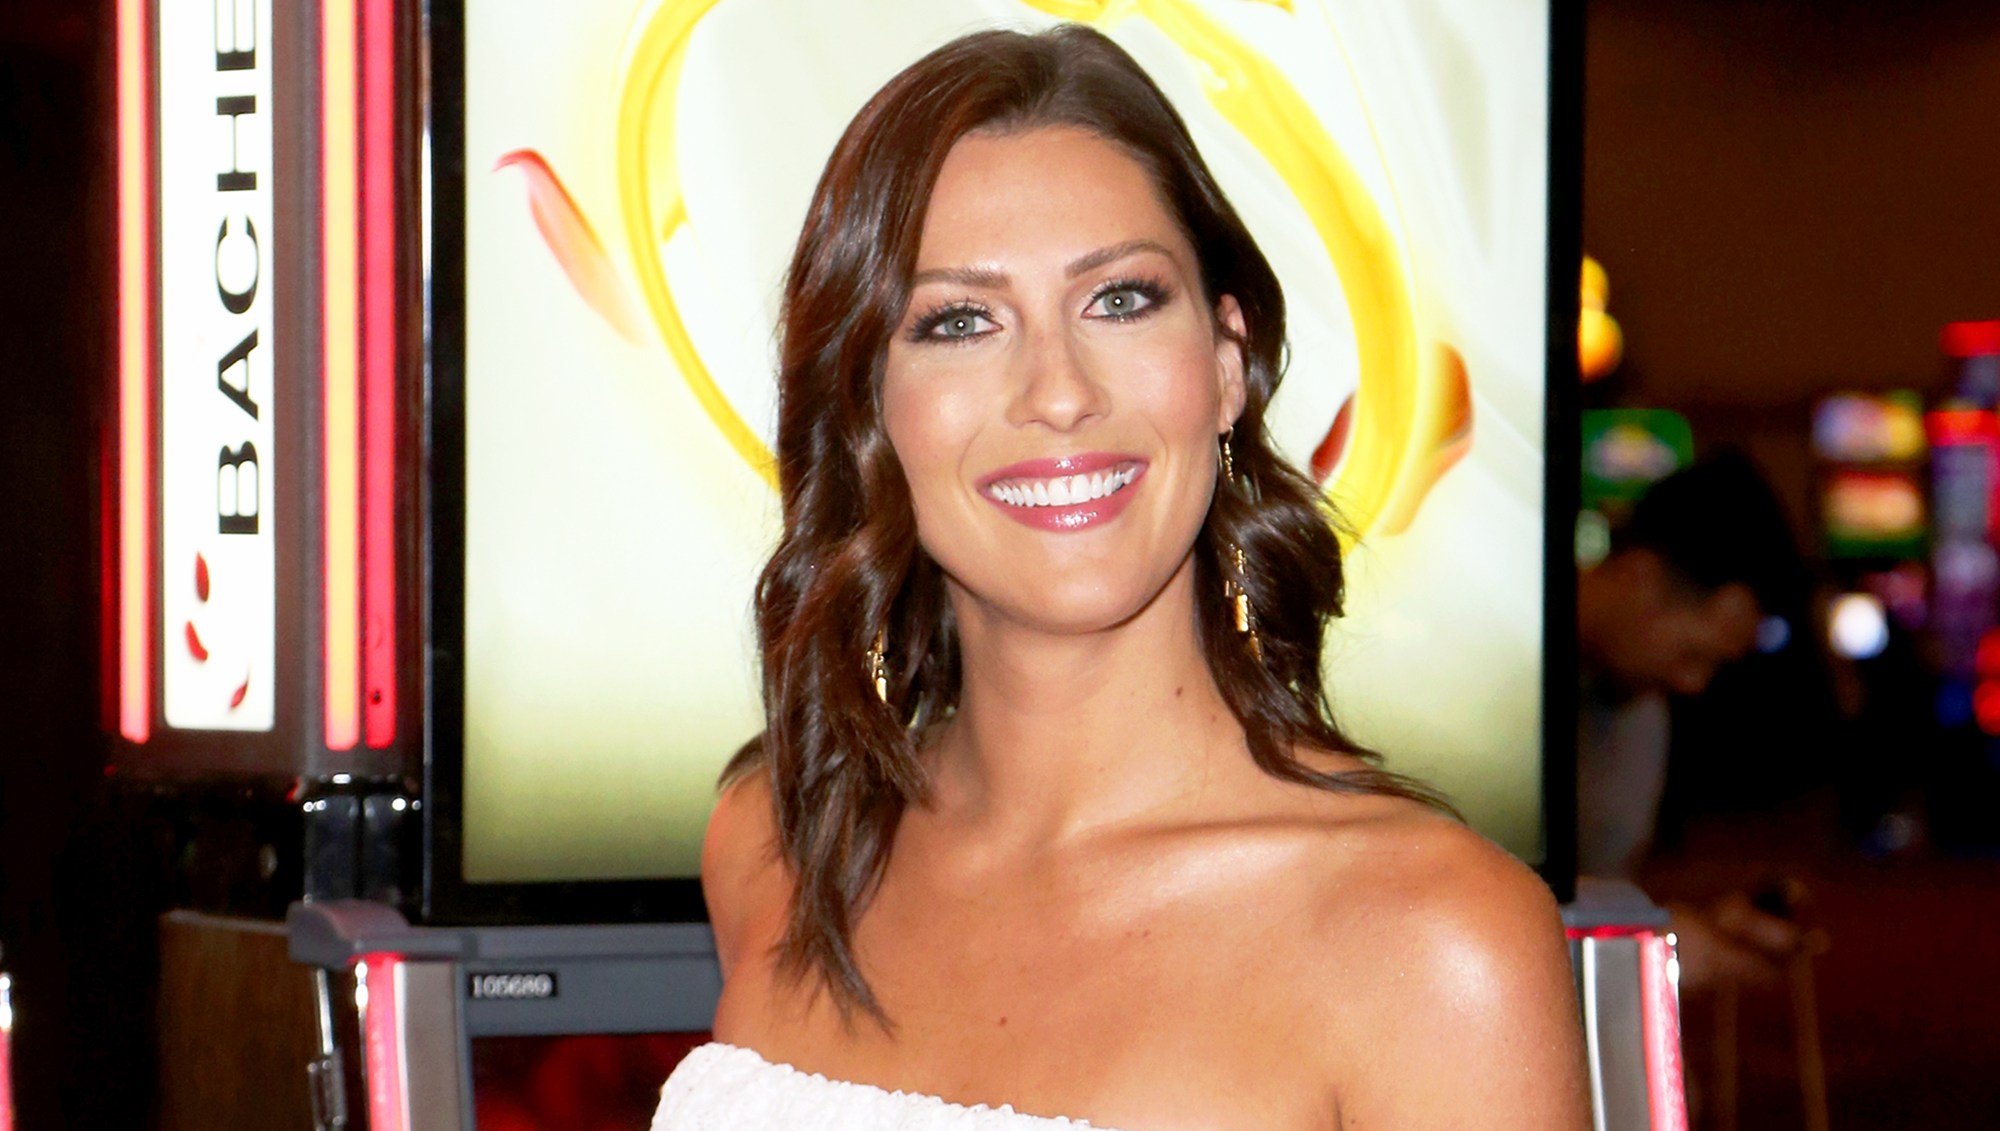 """Becca Kufrin attends an unveiling of """"The Bachelor"""" themed slot machine at the MGM Grand Hotel & Casino on May 17, 2018 in Las Vegas, Nevada."""